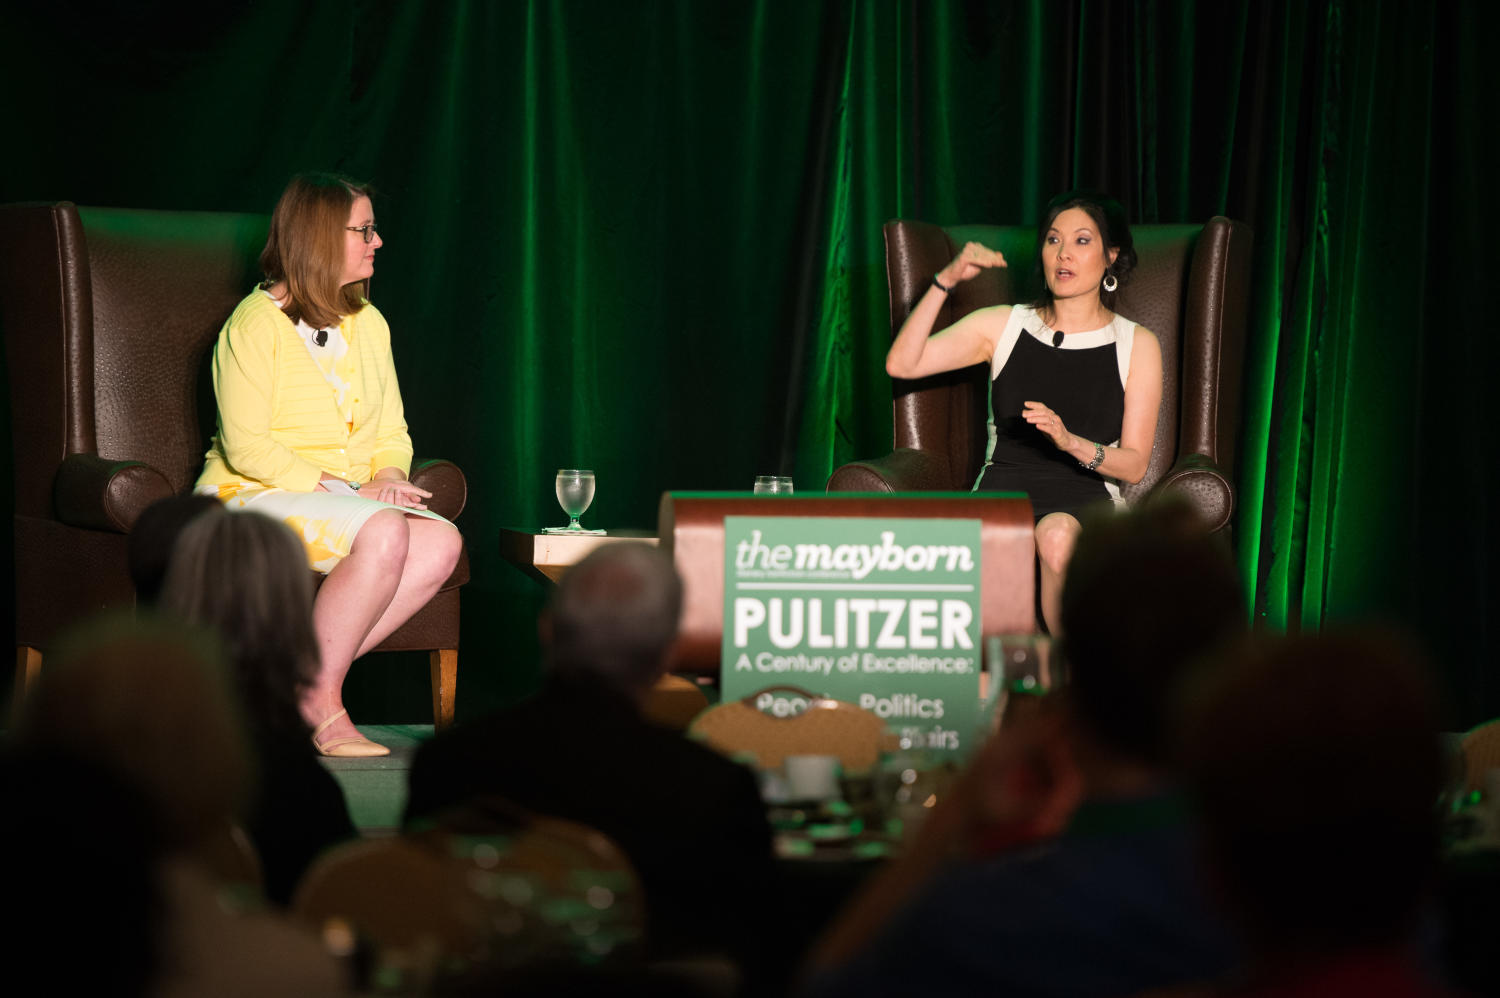 [Krys Boyd and Sheryl WuDunn sitting on stage during Literary Lights Dinner], Photograph of Krys Boyd (yellow) and Sheryl WuDunn (black), the first Asian American reporter to win a Pulitzer Prize, sitting on stage at the Literary Lights Dinner. WuDunn is speaking to those it attendance and is also gesturing with her hands. She was invited to be the Keynote Speaker at the event held by the Mayborn Literary Nonfiction Conference. There is a screen next to them that is displaying an enlarged image of the two sitting down. The dinner took place in the International Ballroom at the Hilton DFW Lakes Executive Conference Center, Grapevine, TX.,